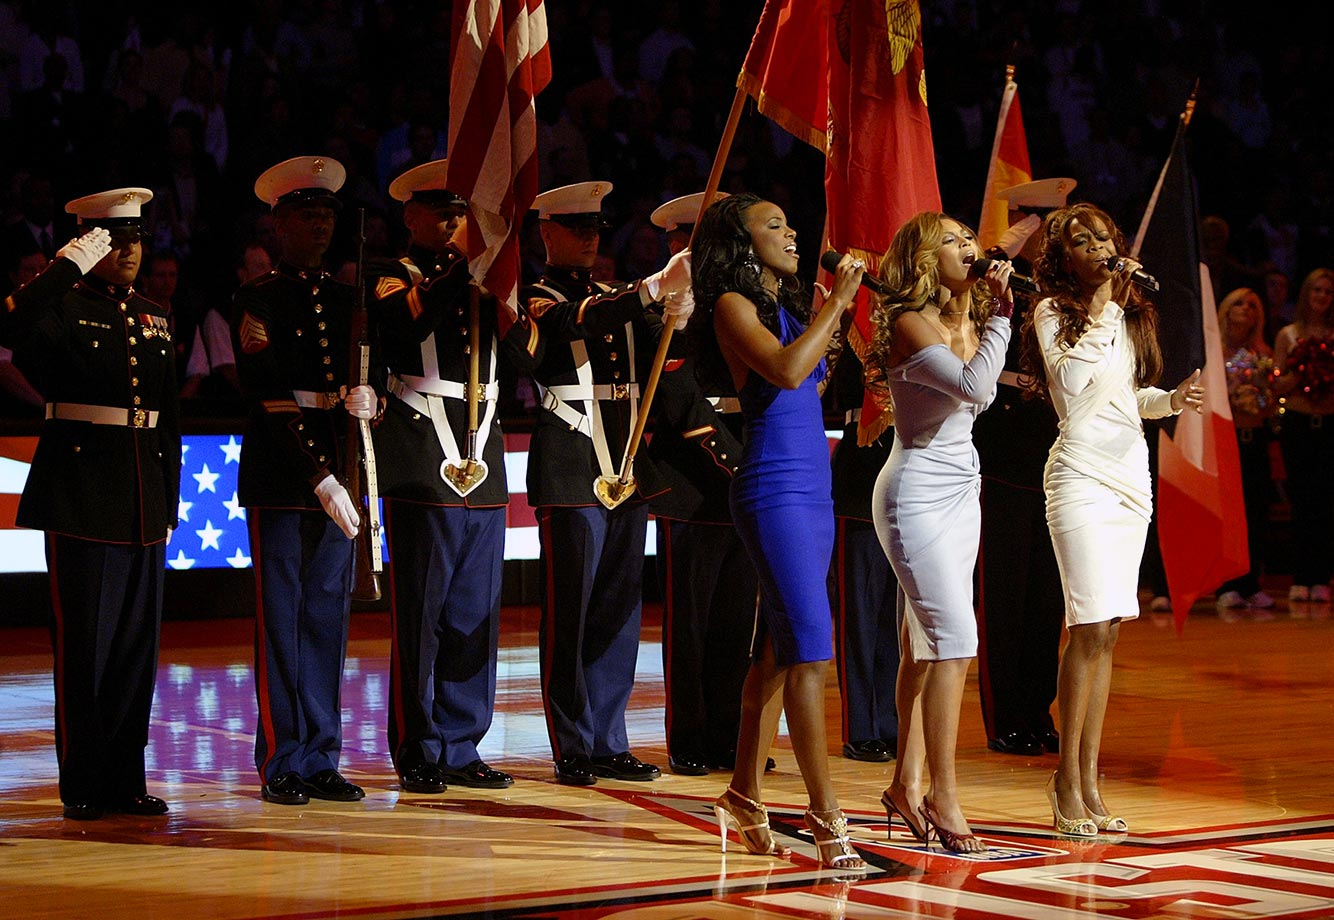 Destiny's Child reunited for an official farewell performance to sing the national anthem preceding the 2006 NBA All-Star Game at the Toyota Center in their native Houston. Nearly seven years later, however, the group would reunite at Super Bowl 49.